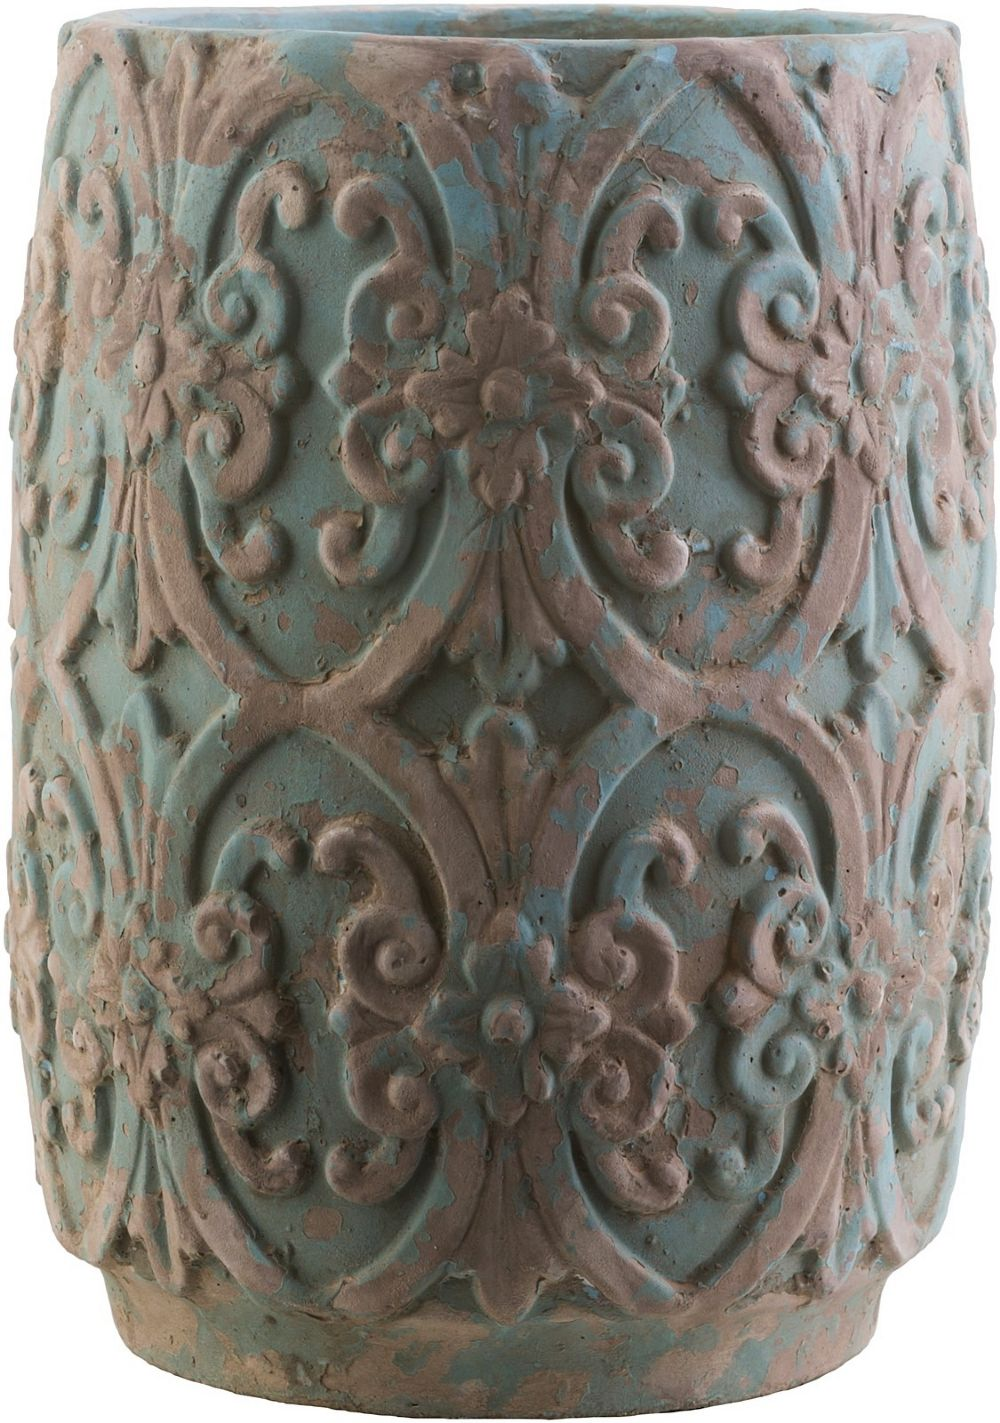 surya zephra country & floral outdoor pots